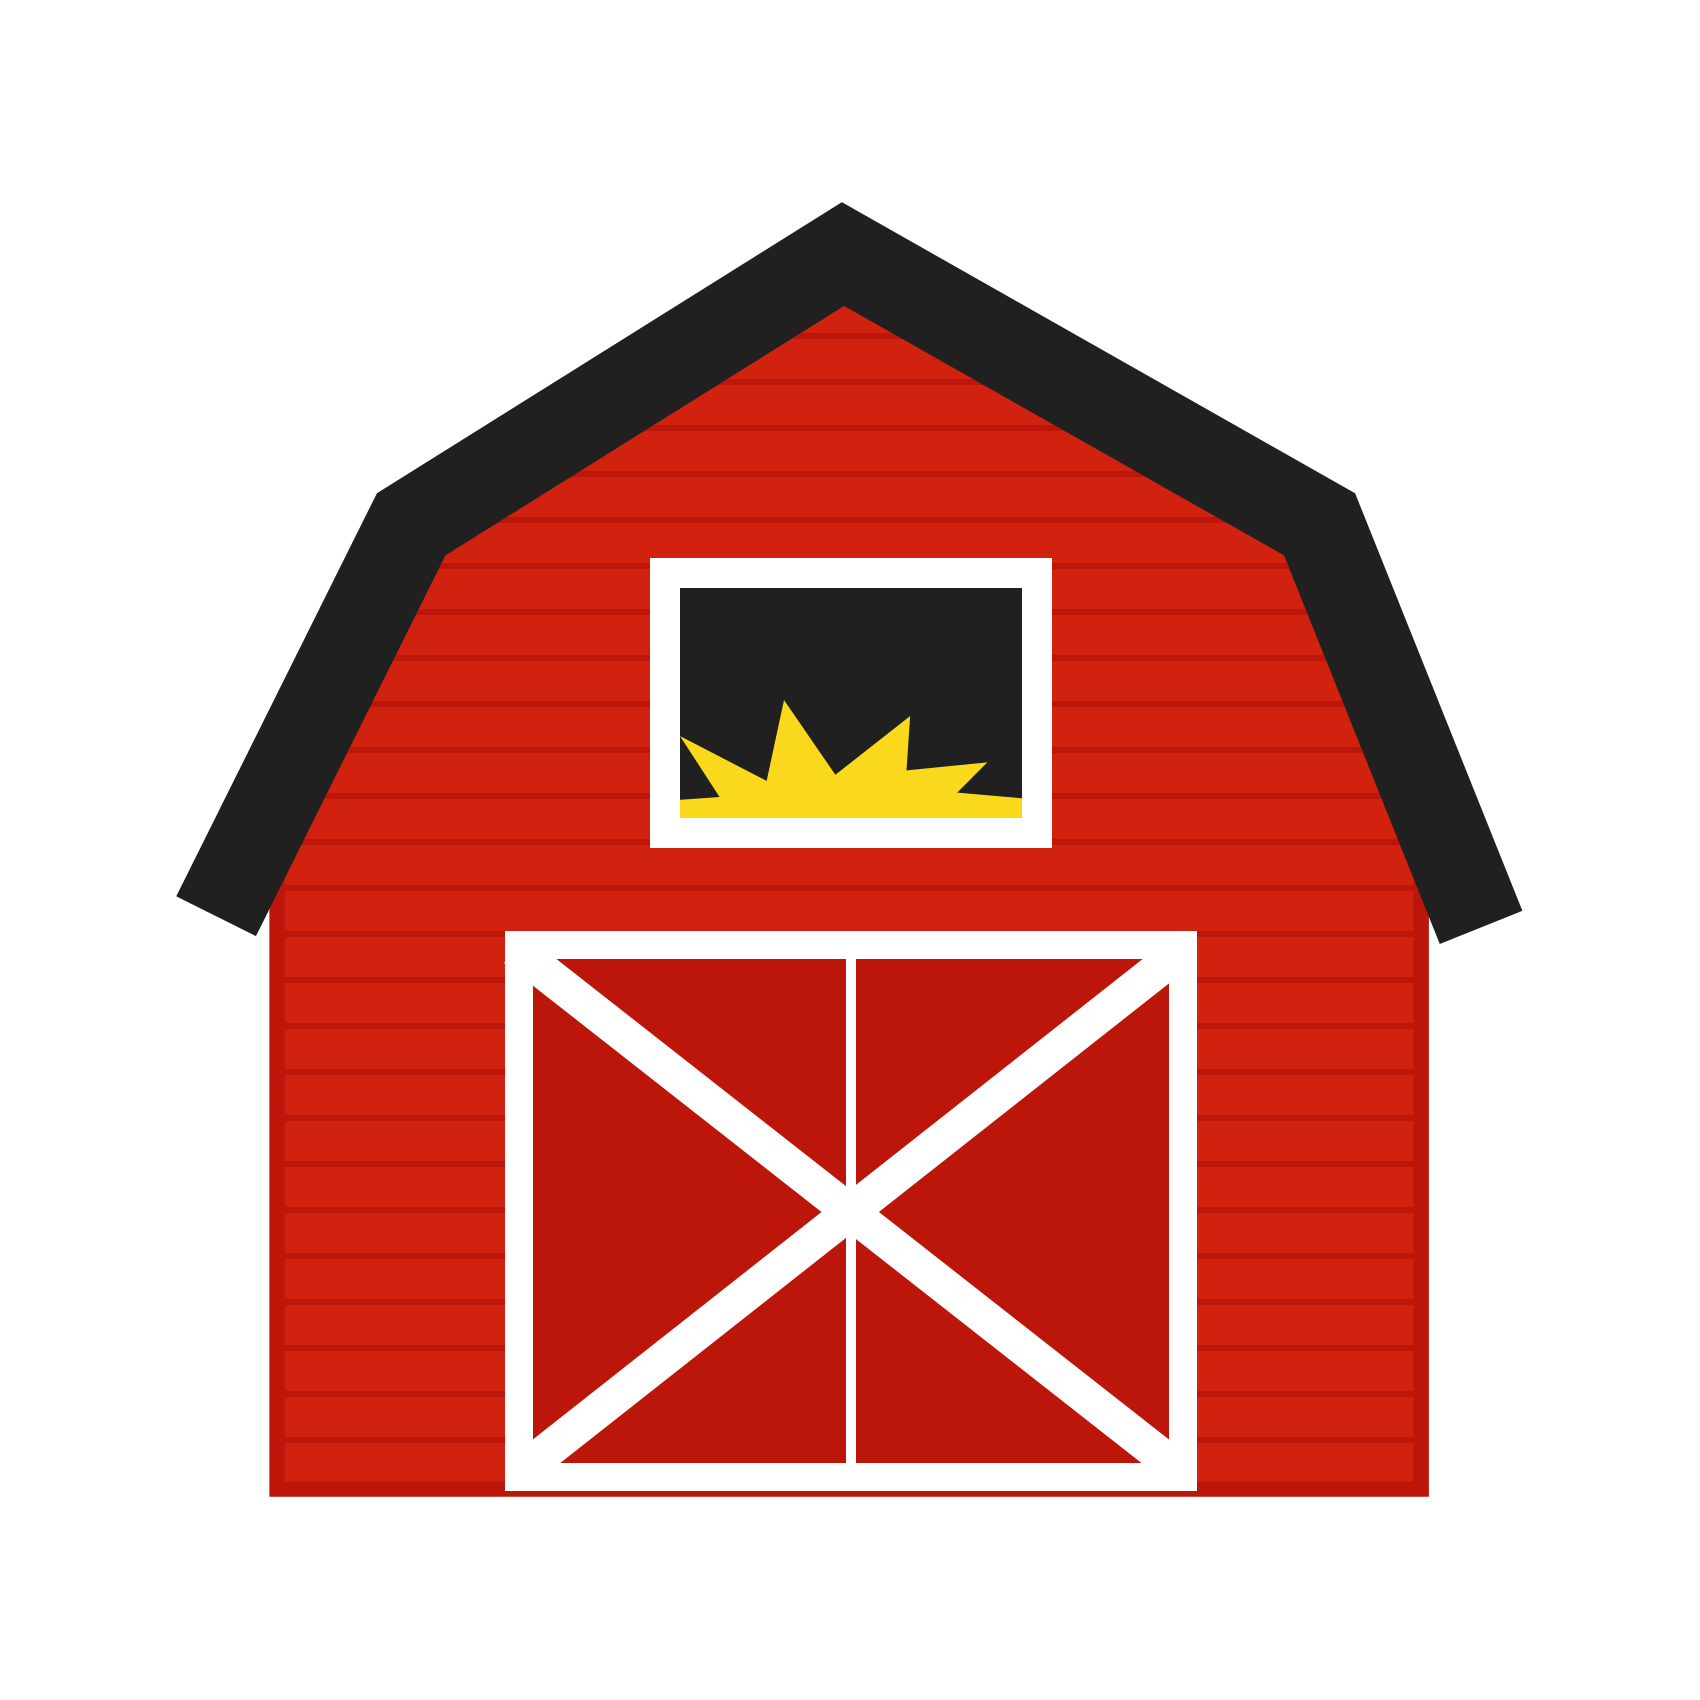 Red Farmhouse Drawing Barn Clipart For Kids Clipart Panda Free Clipart Images